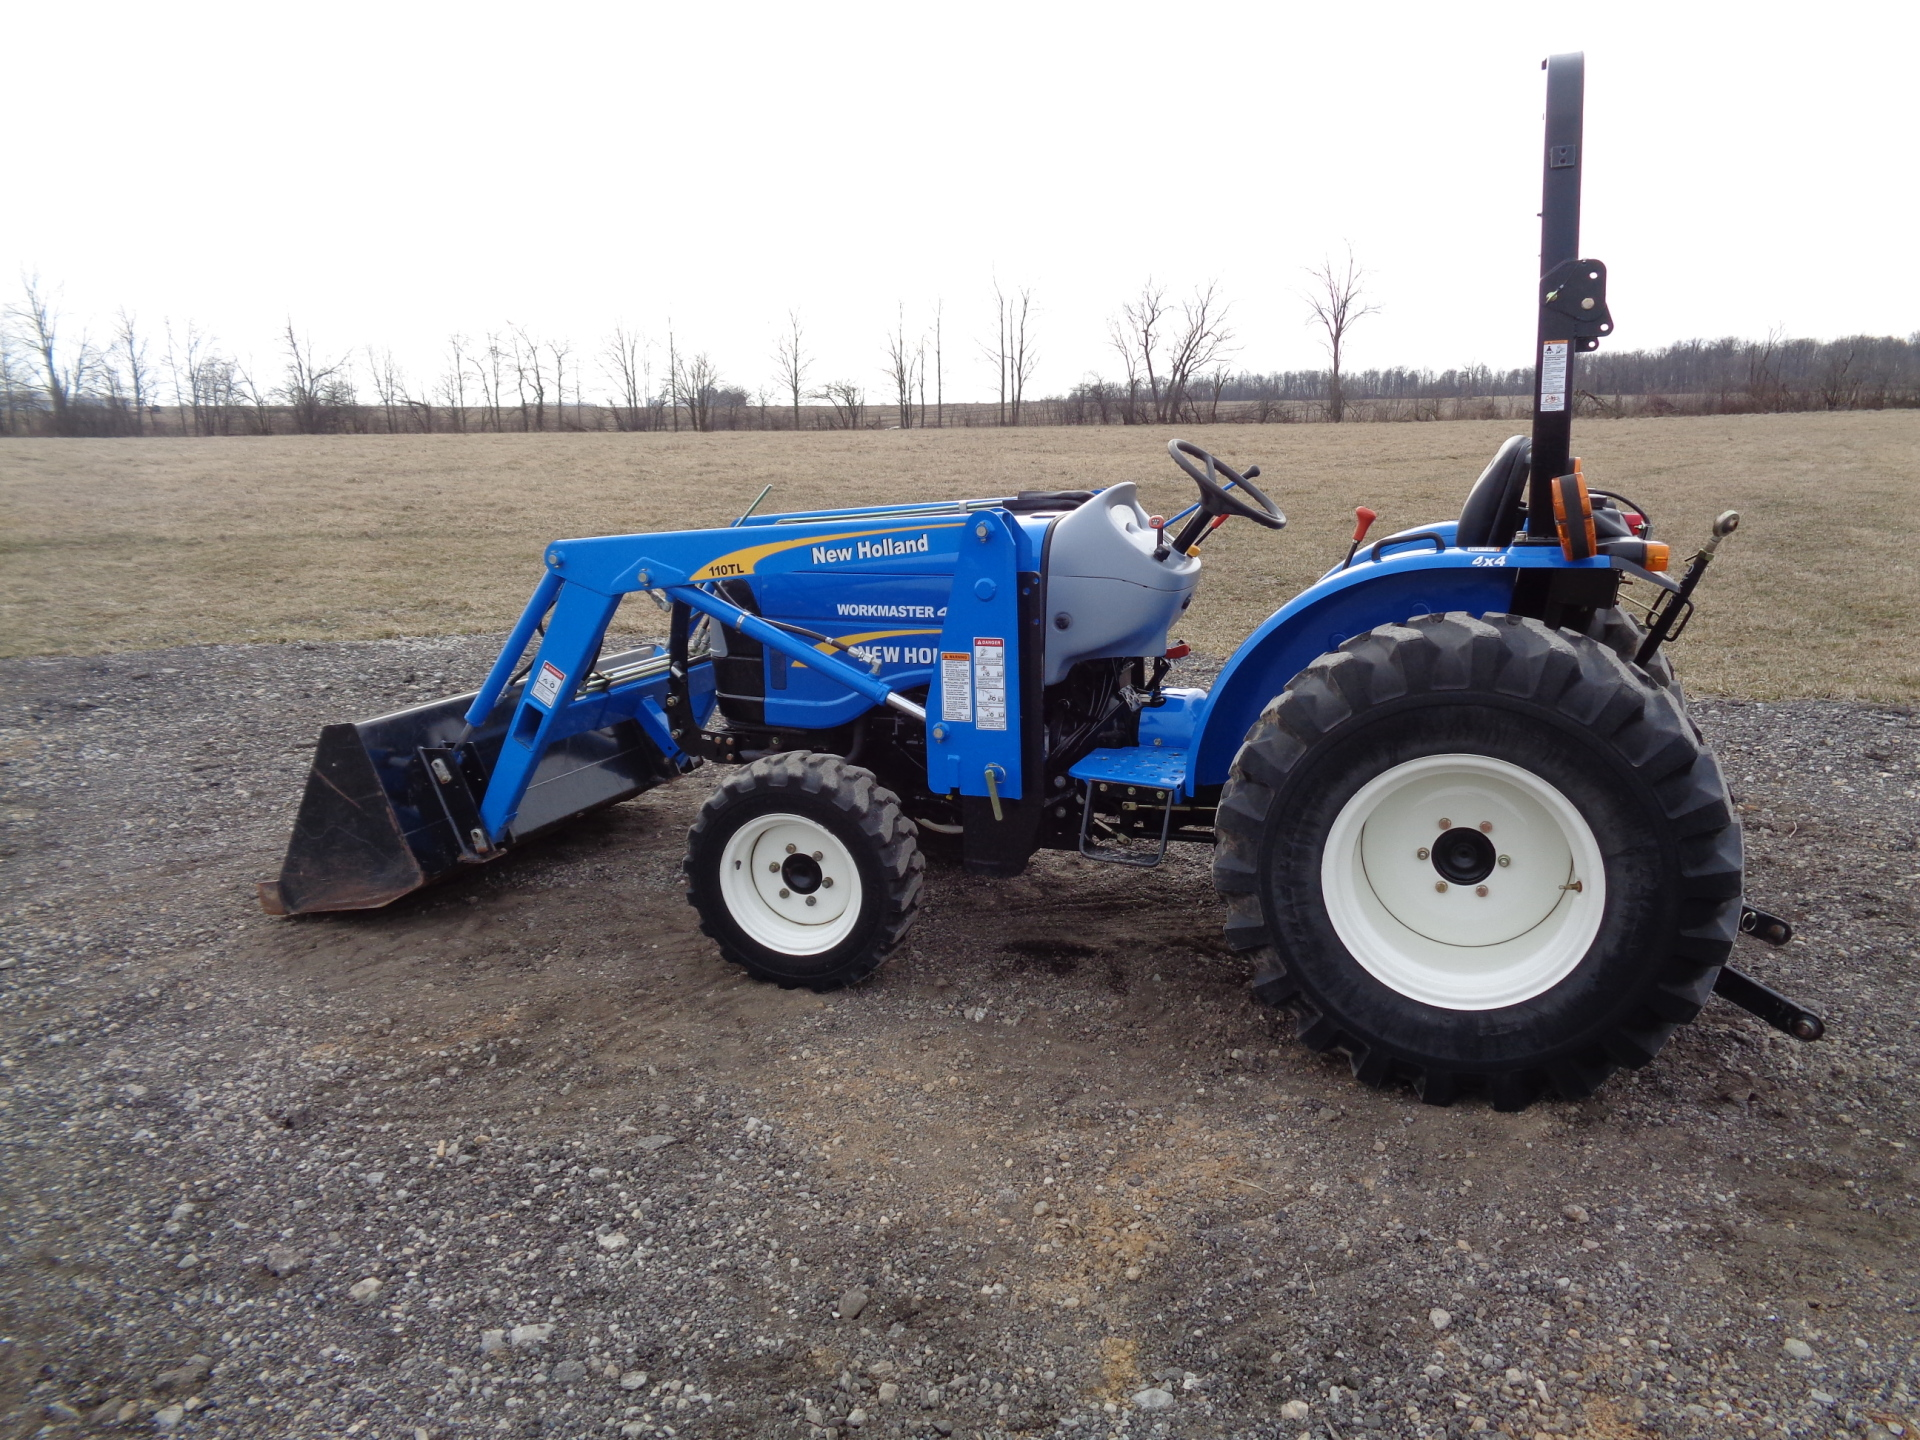 New Holland Workmaster 40   $17,900